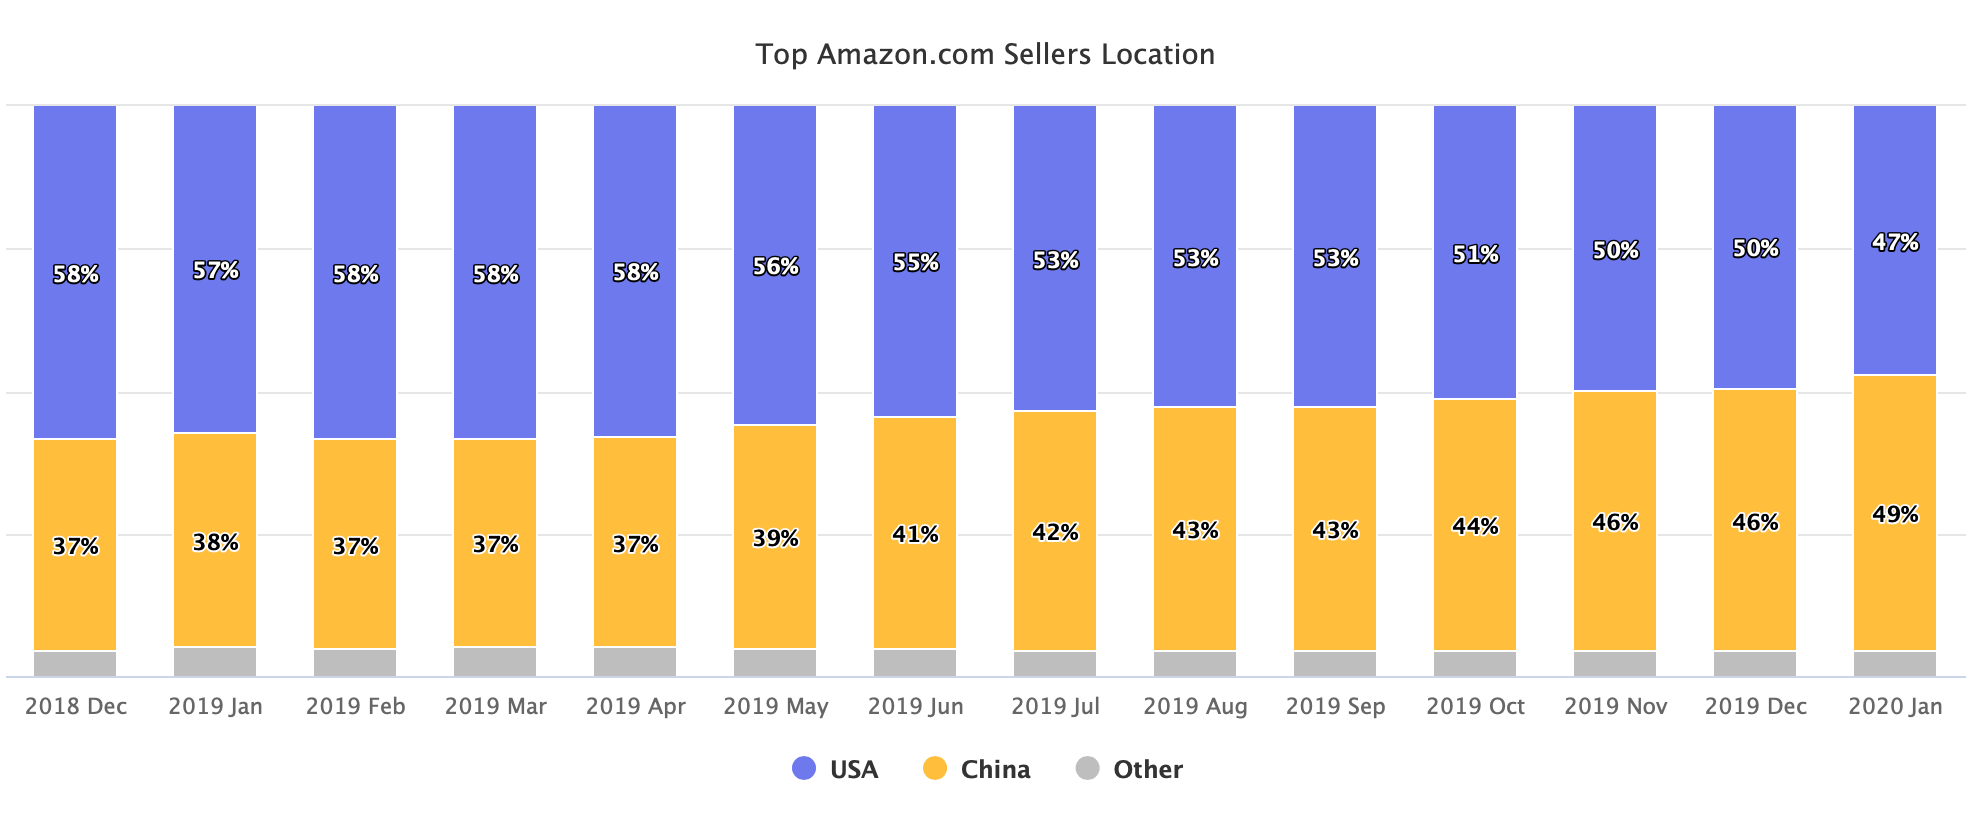 Top Amazon.com Sellers Location